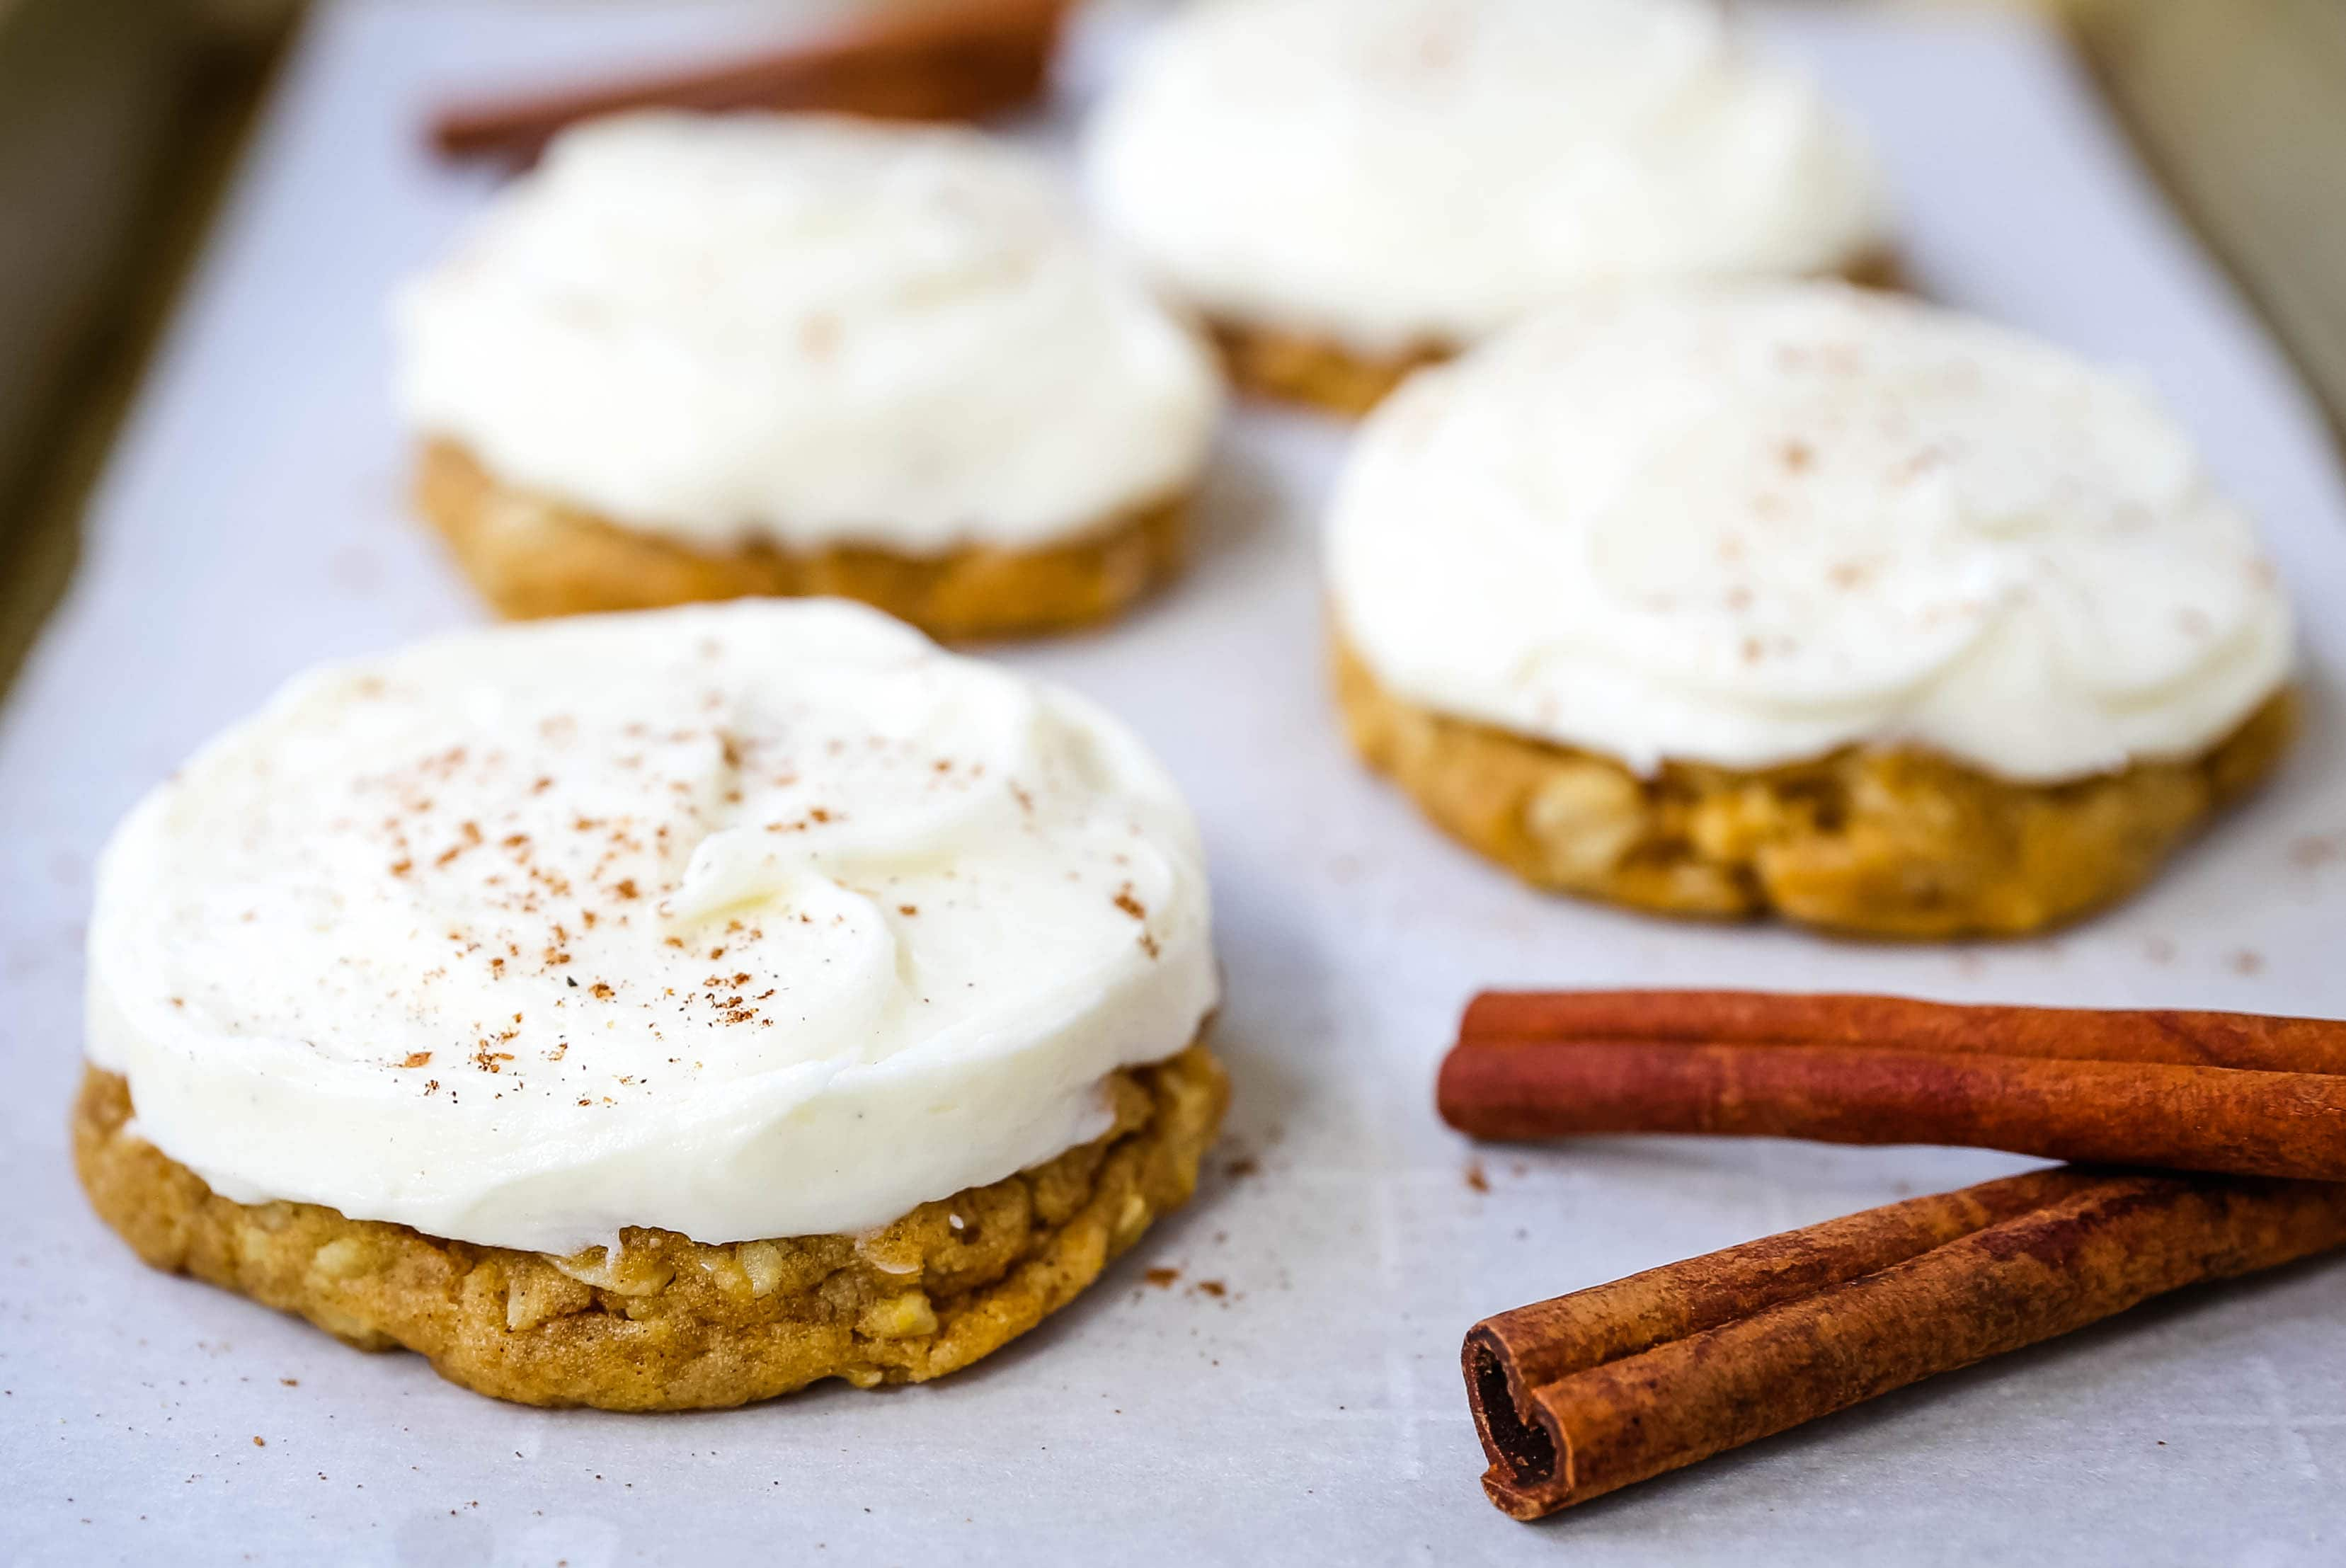 The BEST PUMPKIN COOKIES with CREAM CHEESE FROSTING Soft chewy pumpkin spiced cookies with a fluffy sweet cream cheese frosting. The perfect frosted pumpkin cookie recipe! www.modernhoney.com #pumpkin #pumpkincookies #frostedpumpkincookies #fall #fallrecipes